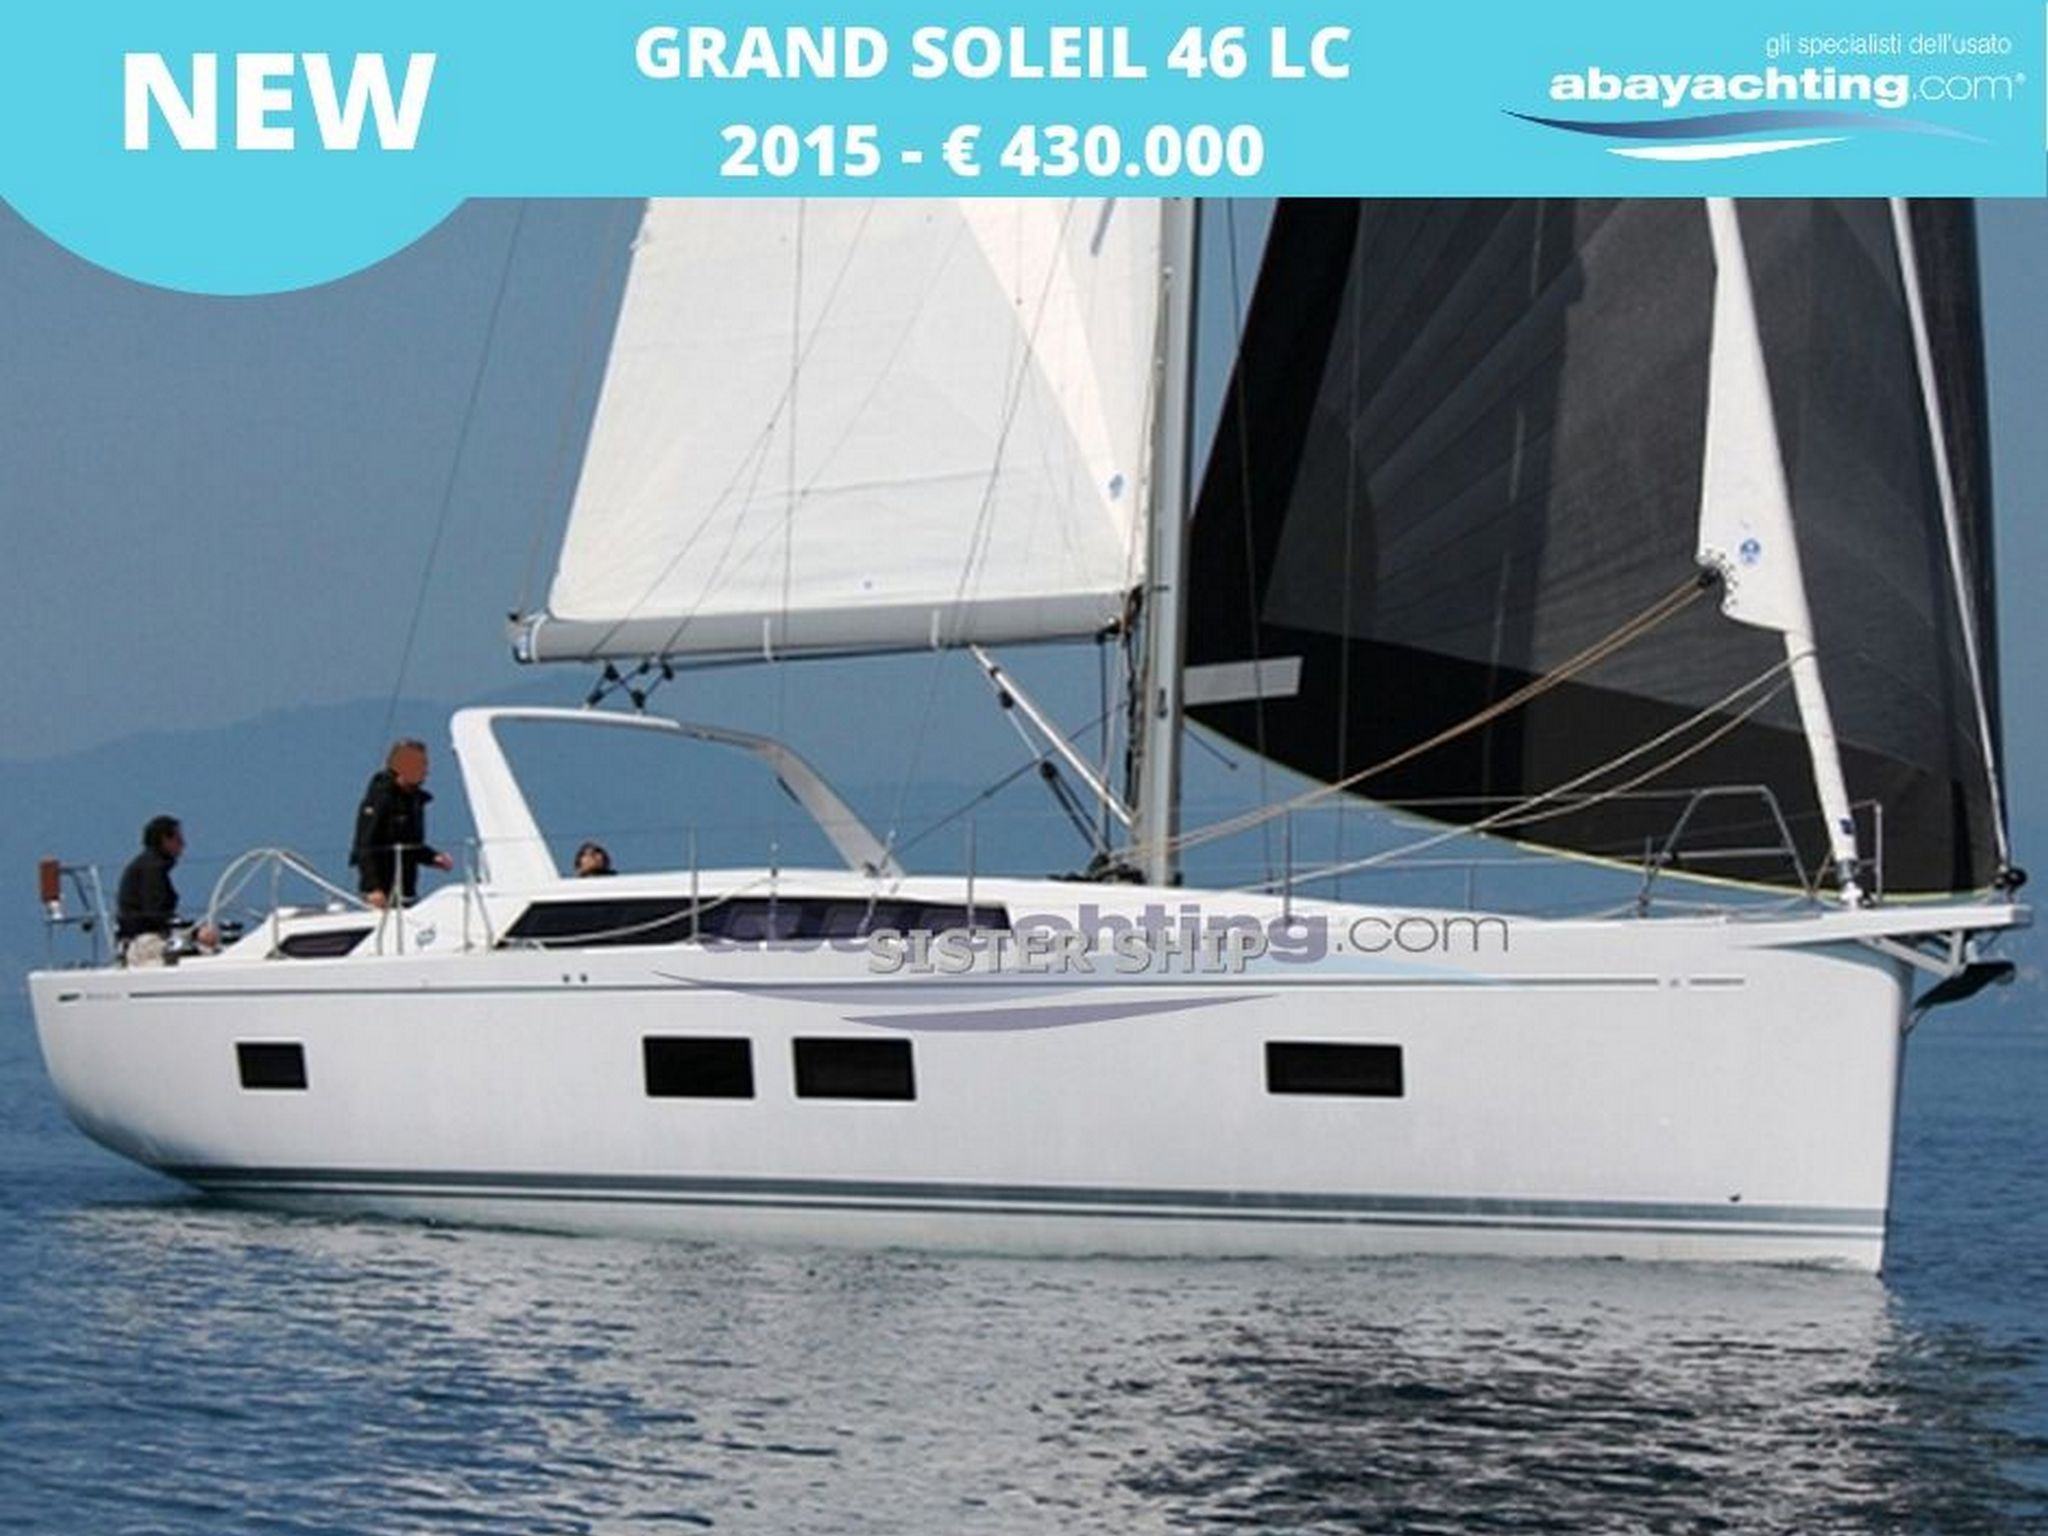 New arrival Grand Soleil 46 LC